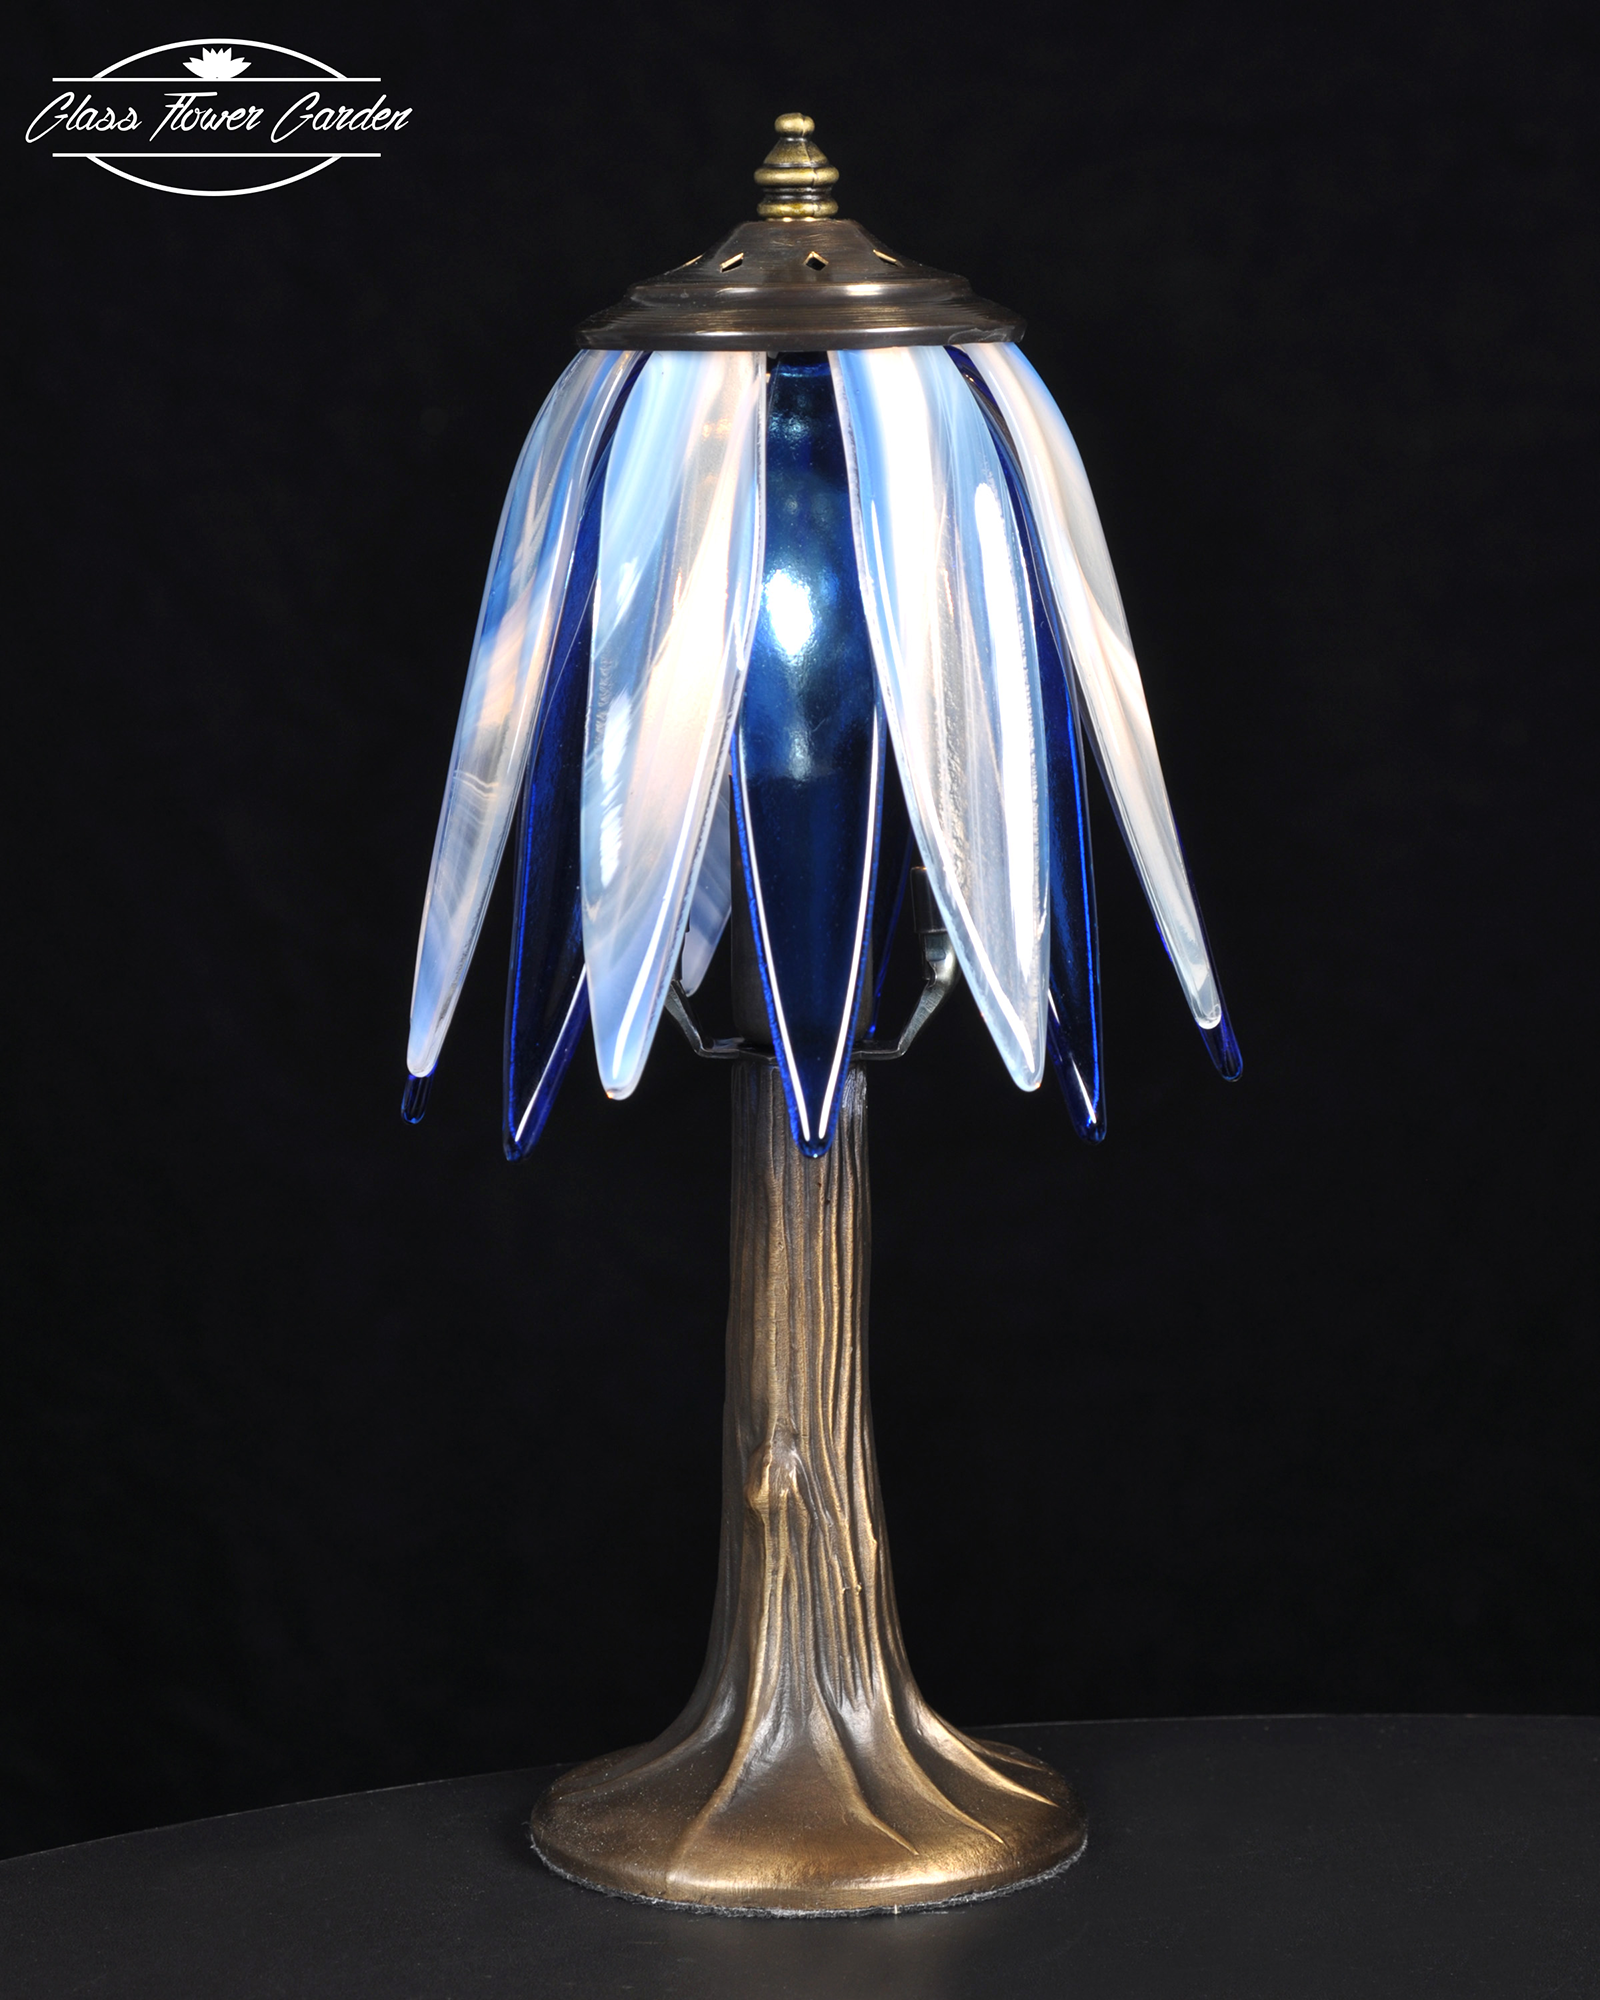 Blue White Glass Shade Lamp Glass Flower Garden Online Store